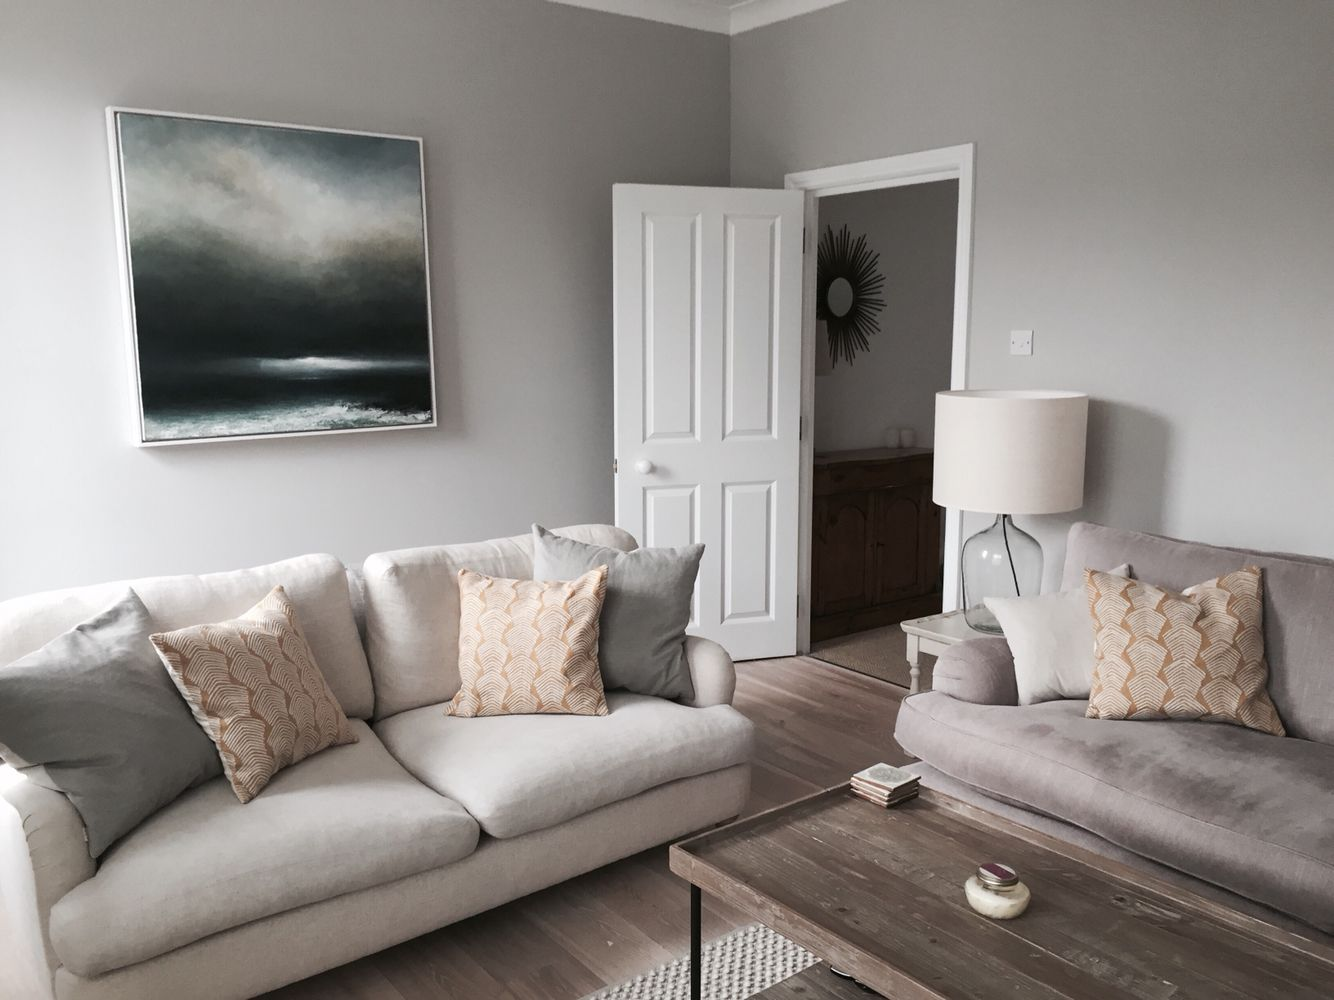 Sitting room farrow and ball cornforth white walls - White walls living room ...